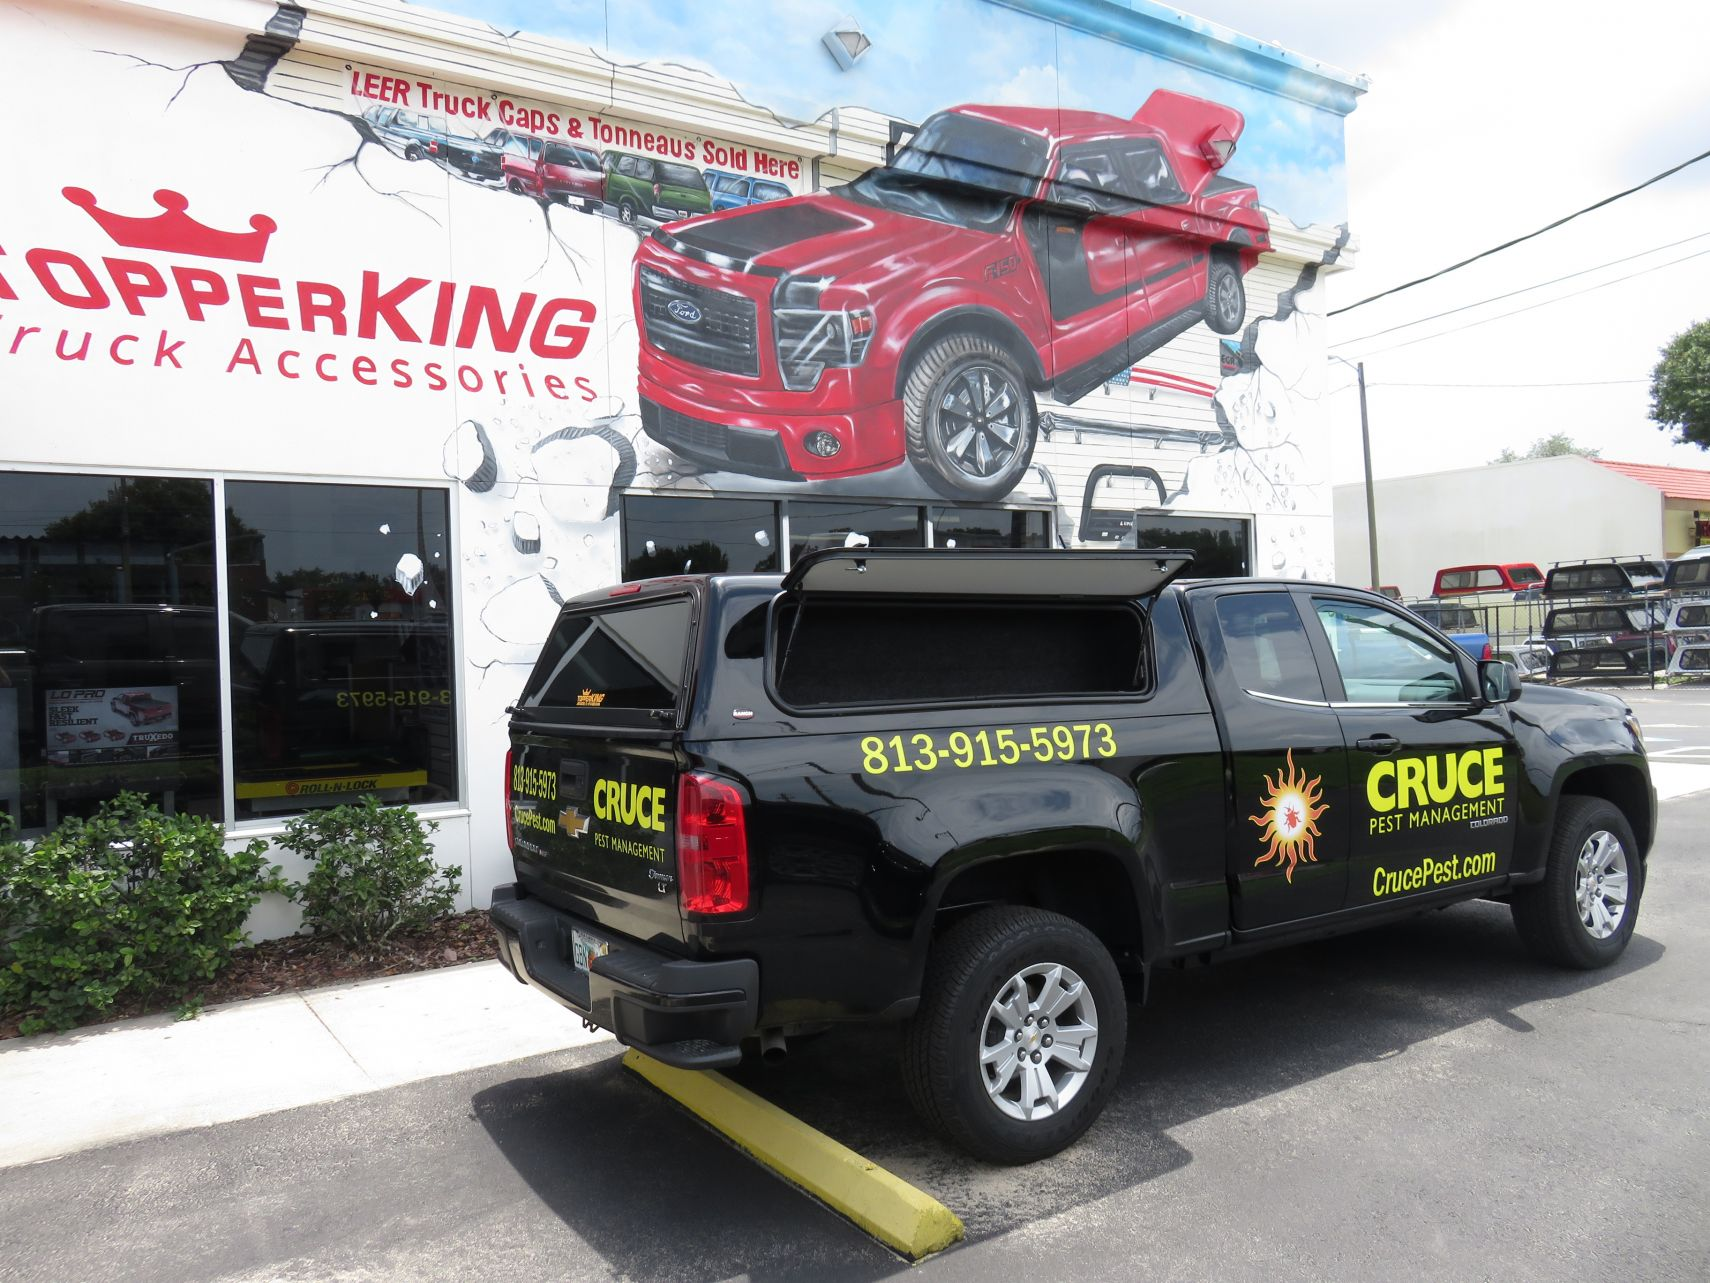 2018 Black Chevy Colorado Ranch Sierra Windoors and Window Tint by TopperKING in Brandon, FL 813-689-2449 or Clearwater, FL 727-530-9066. Call today!